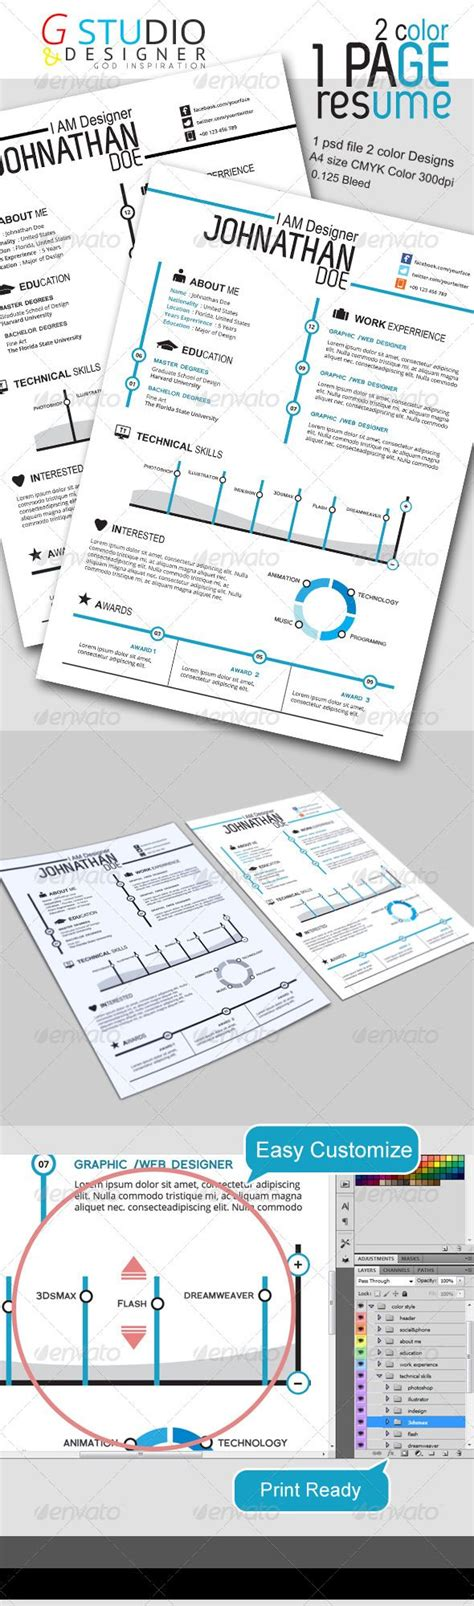 resume fonts and templates dianelee gstudio 2 color one page resume resume template download